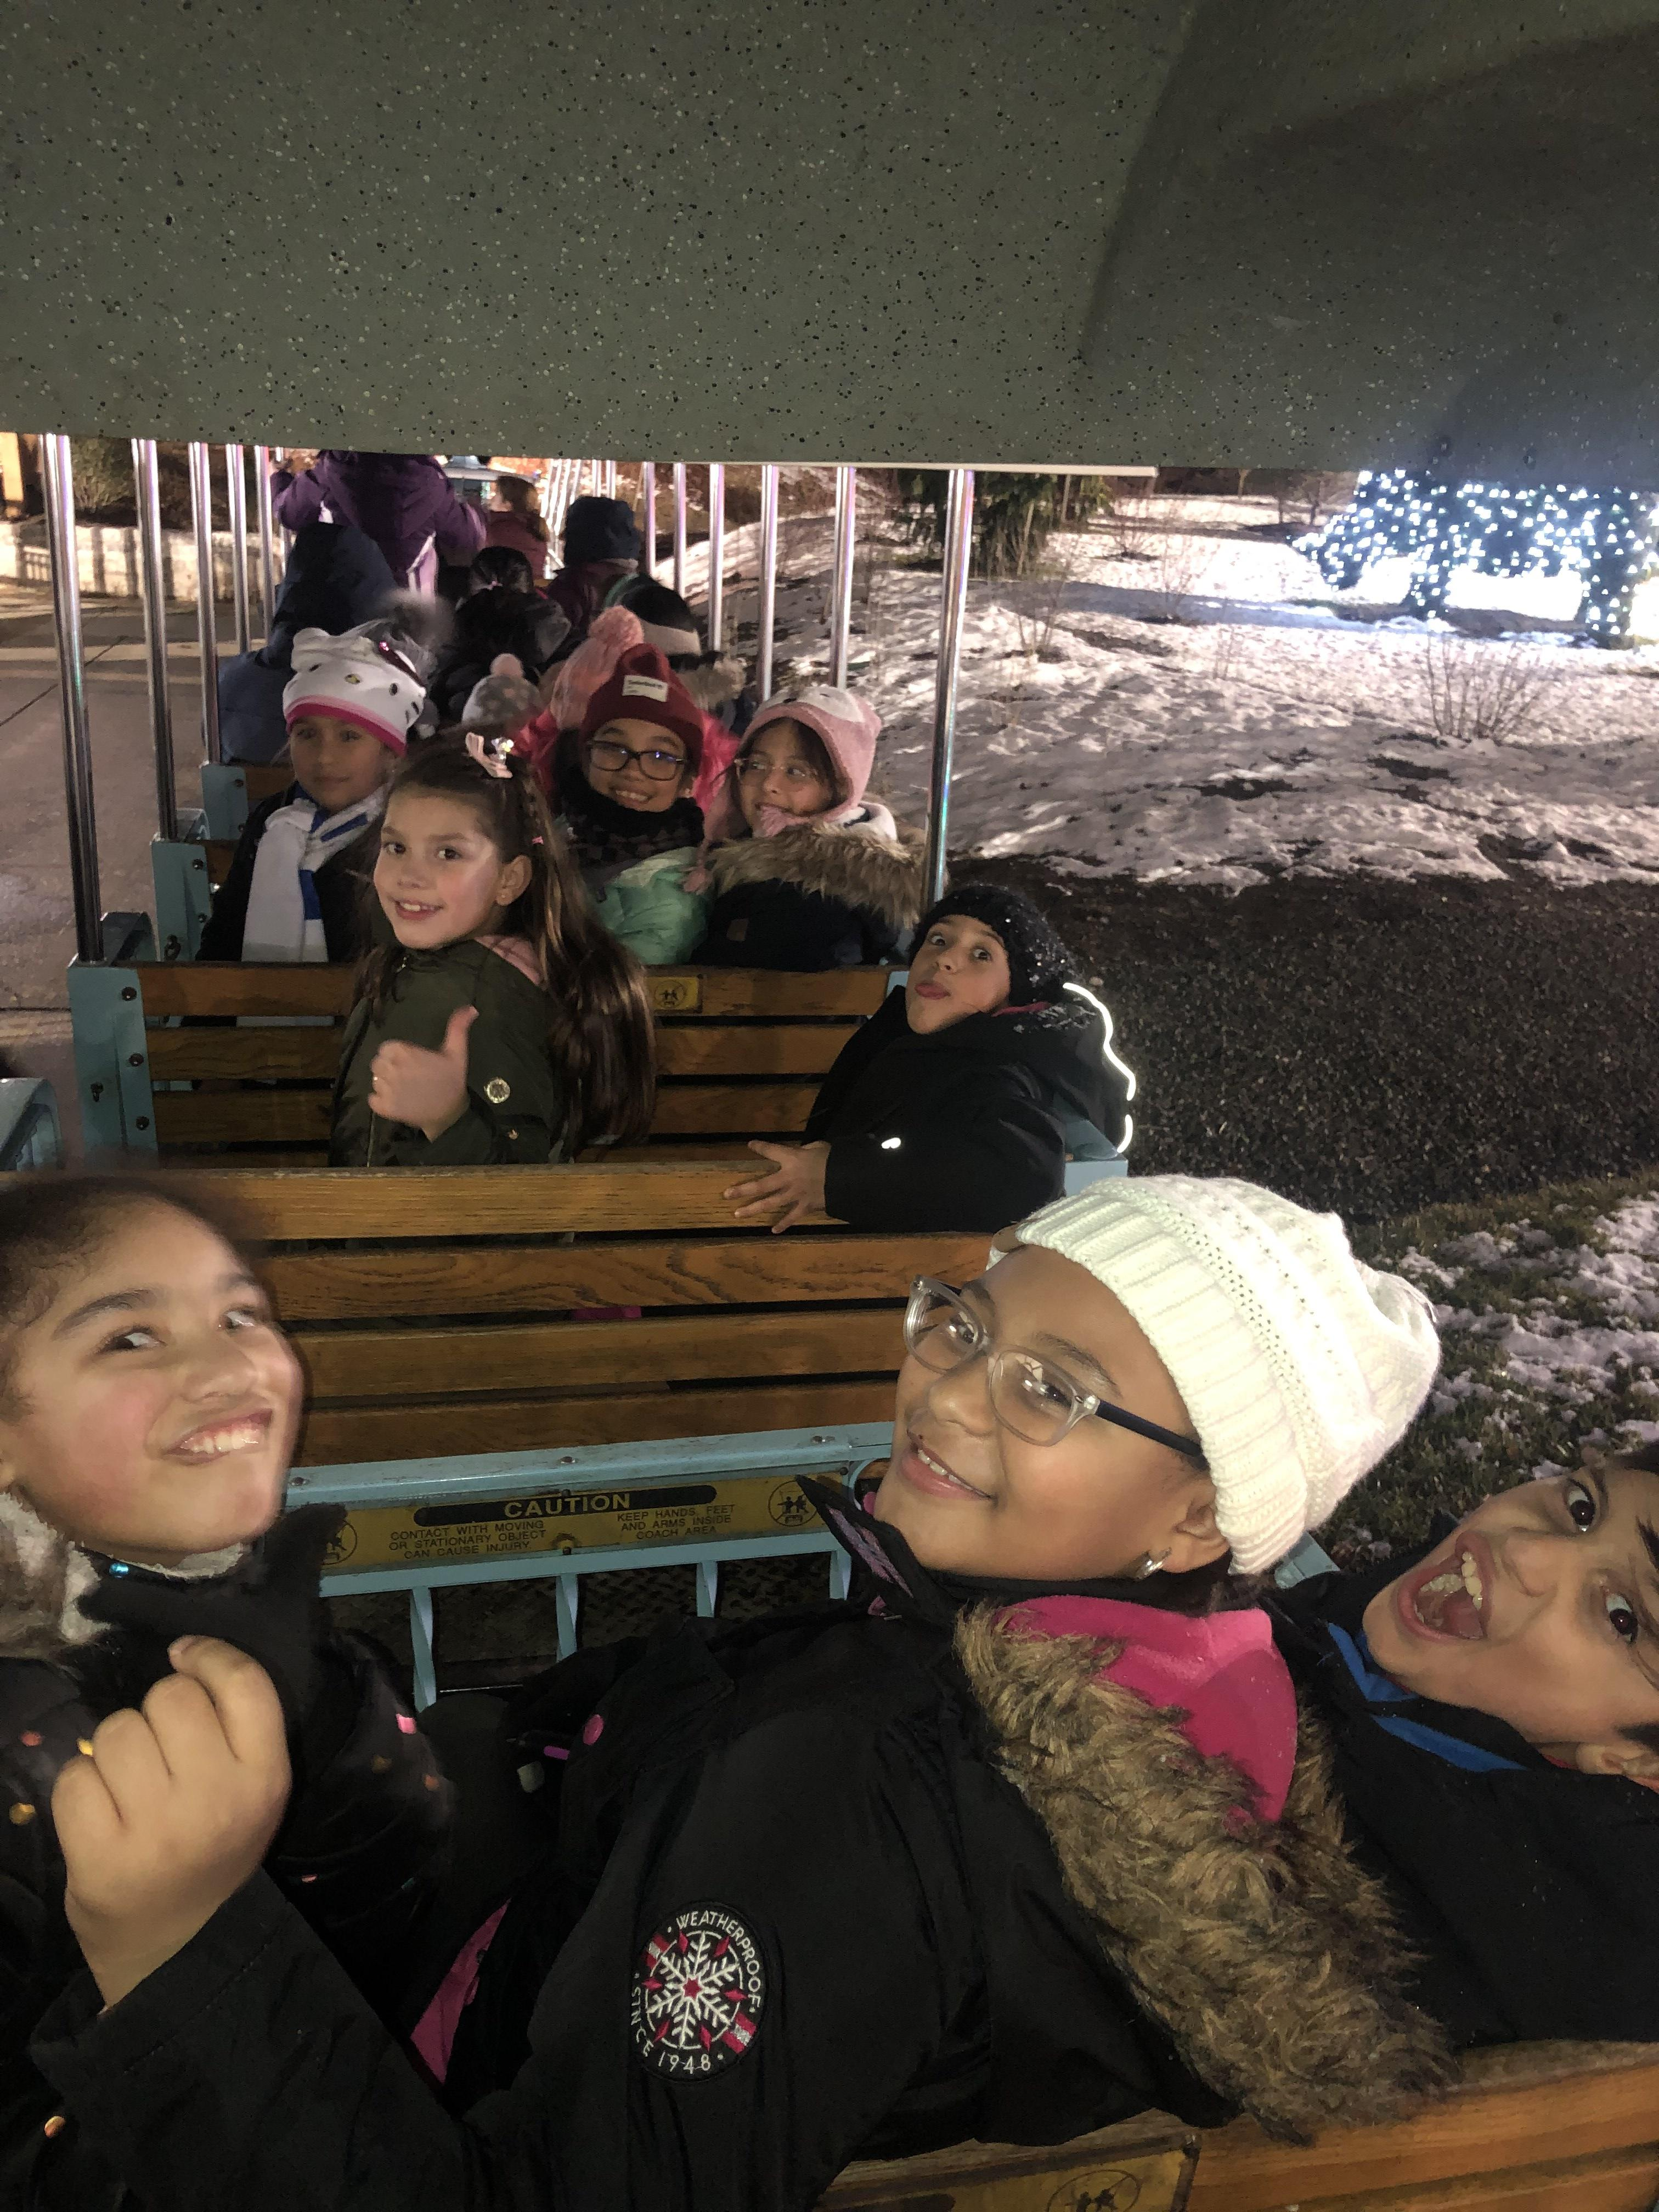 group of kids smiling while on the little red train